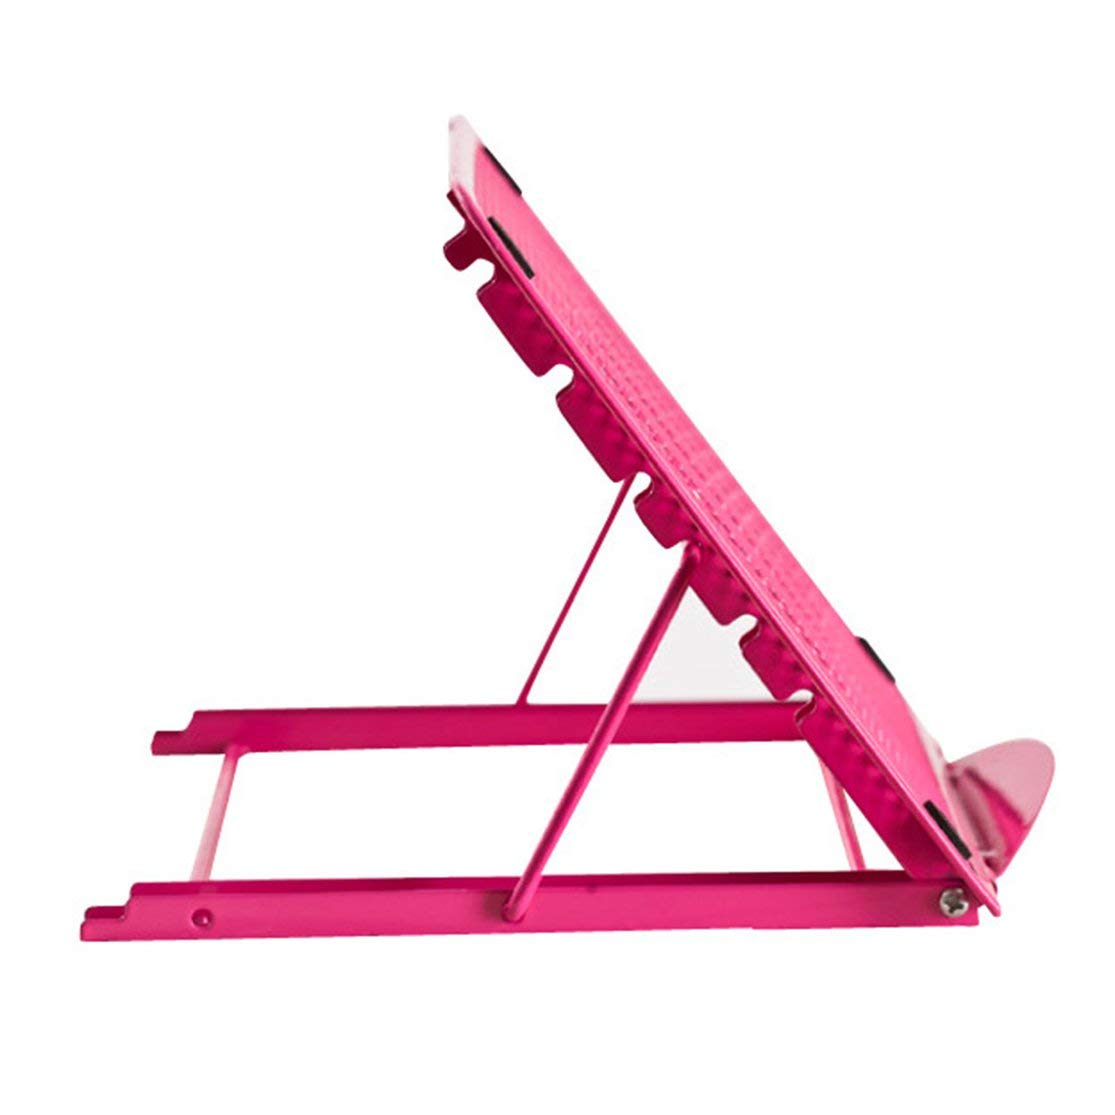 Portable Laptop Stand Laptop Stand Laptop Elevator Ventilated Notebook Stand Dismountable Laptop Holder